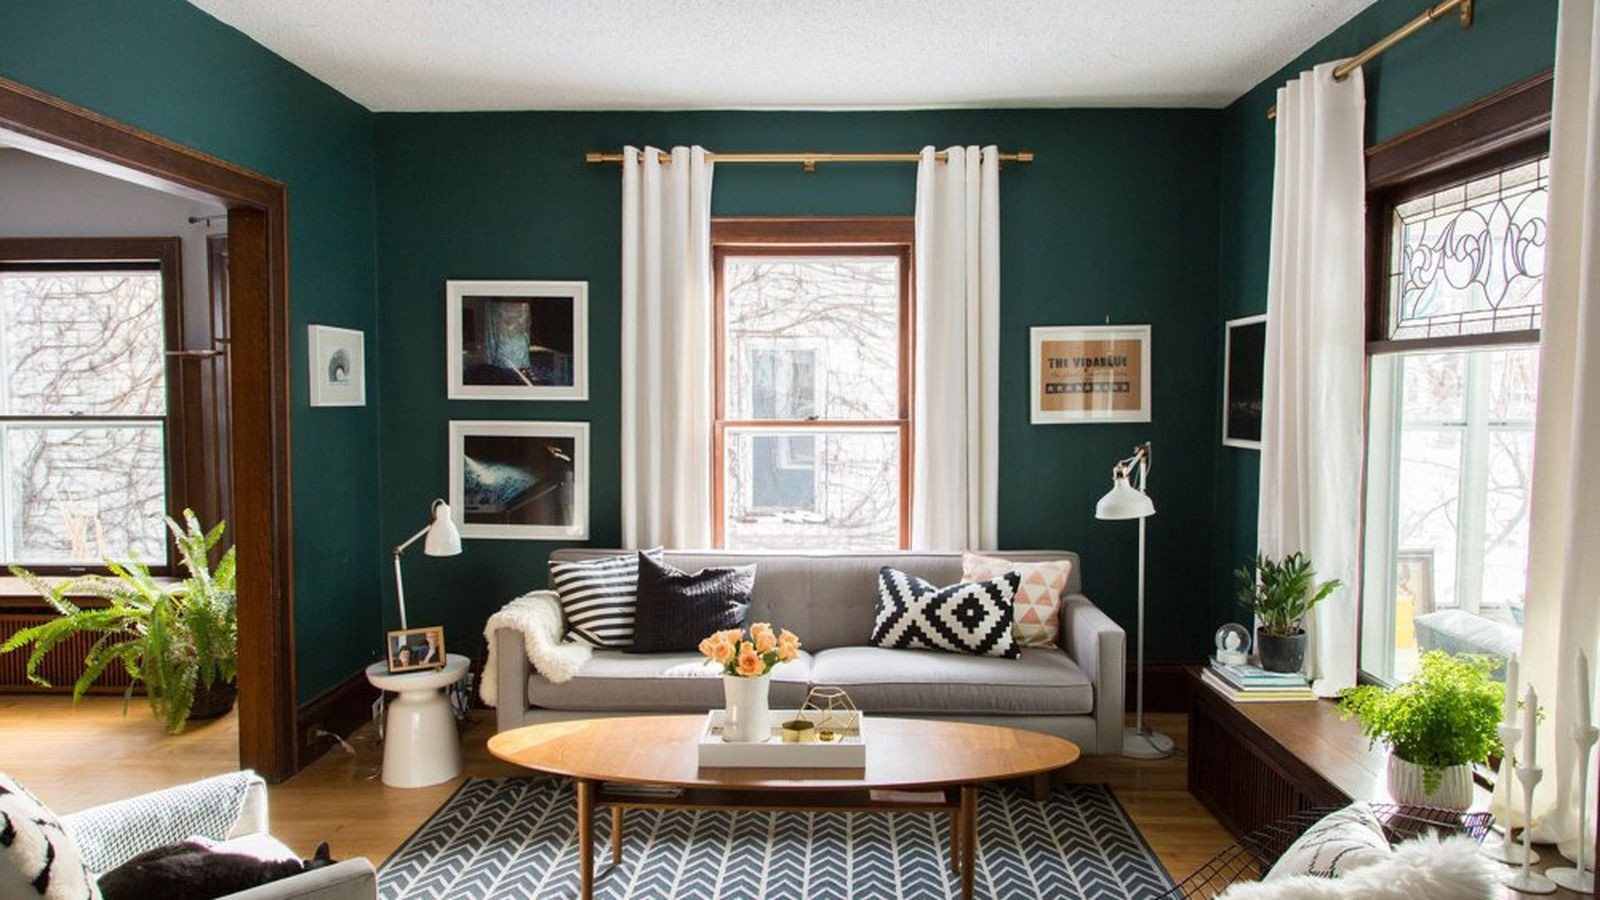 blinds vs curtains price cost efficiency